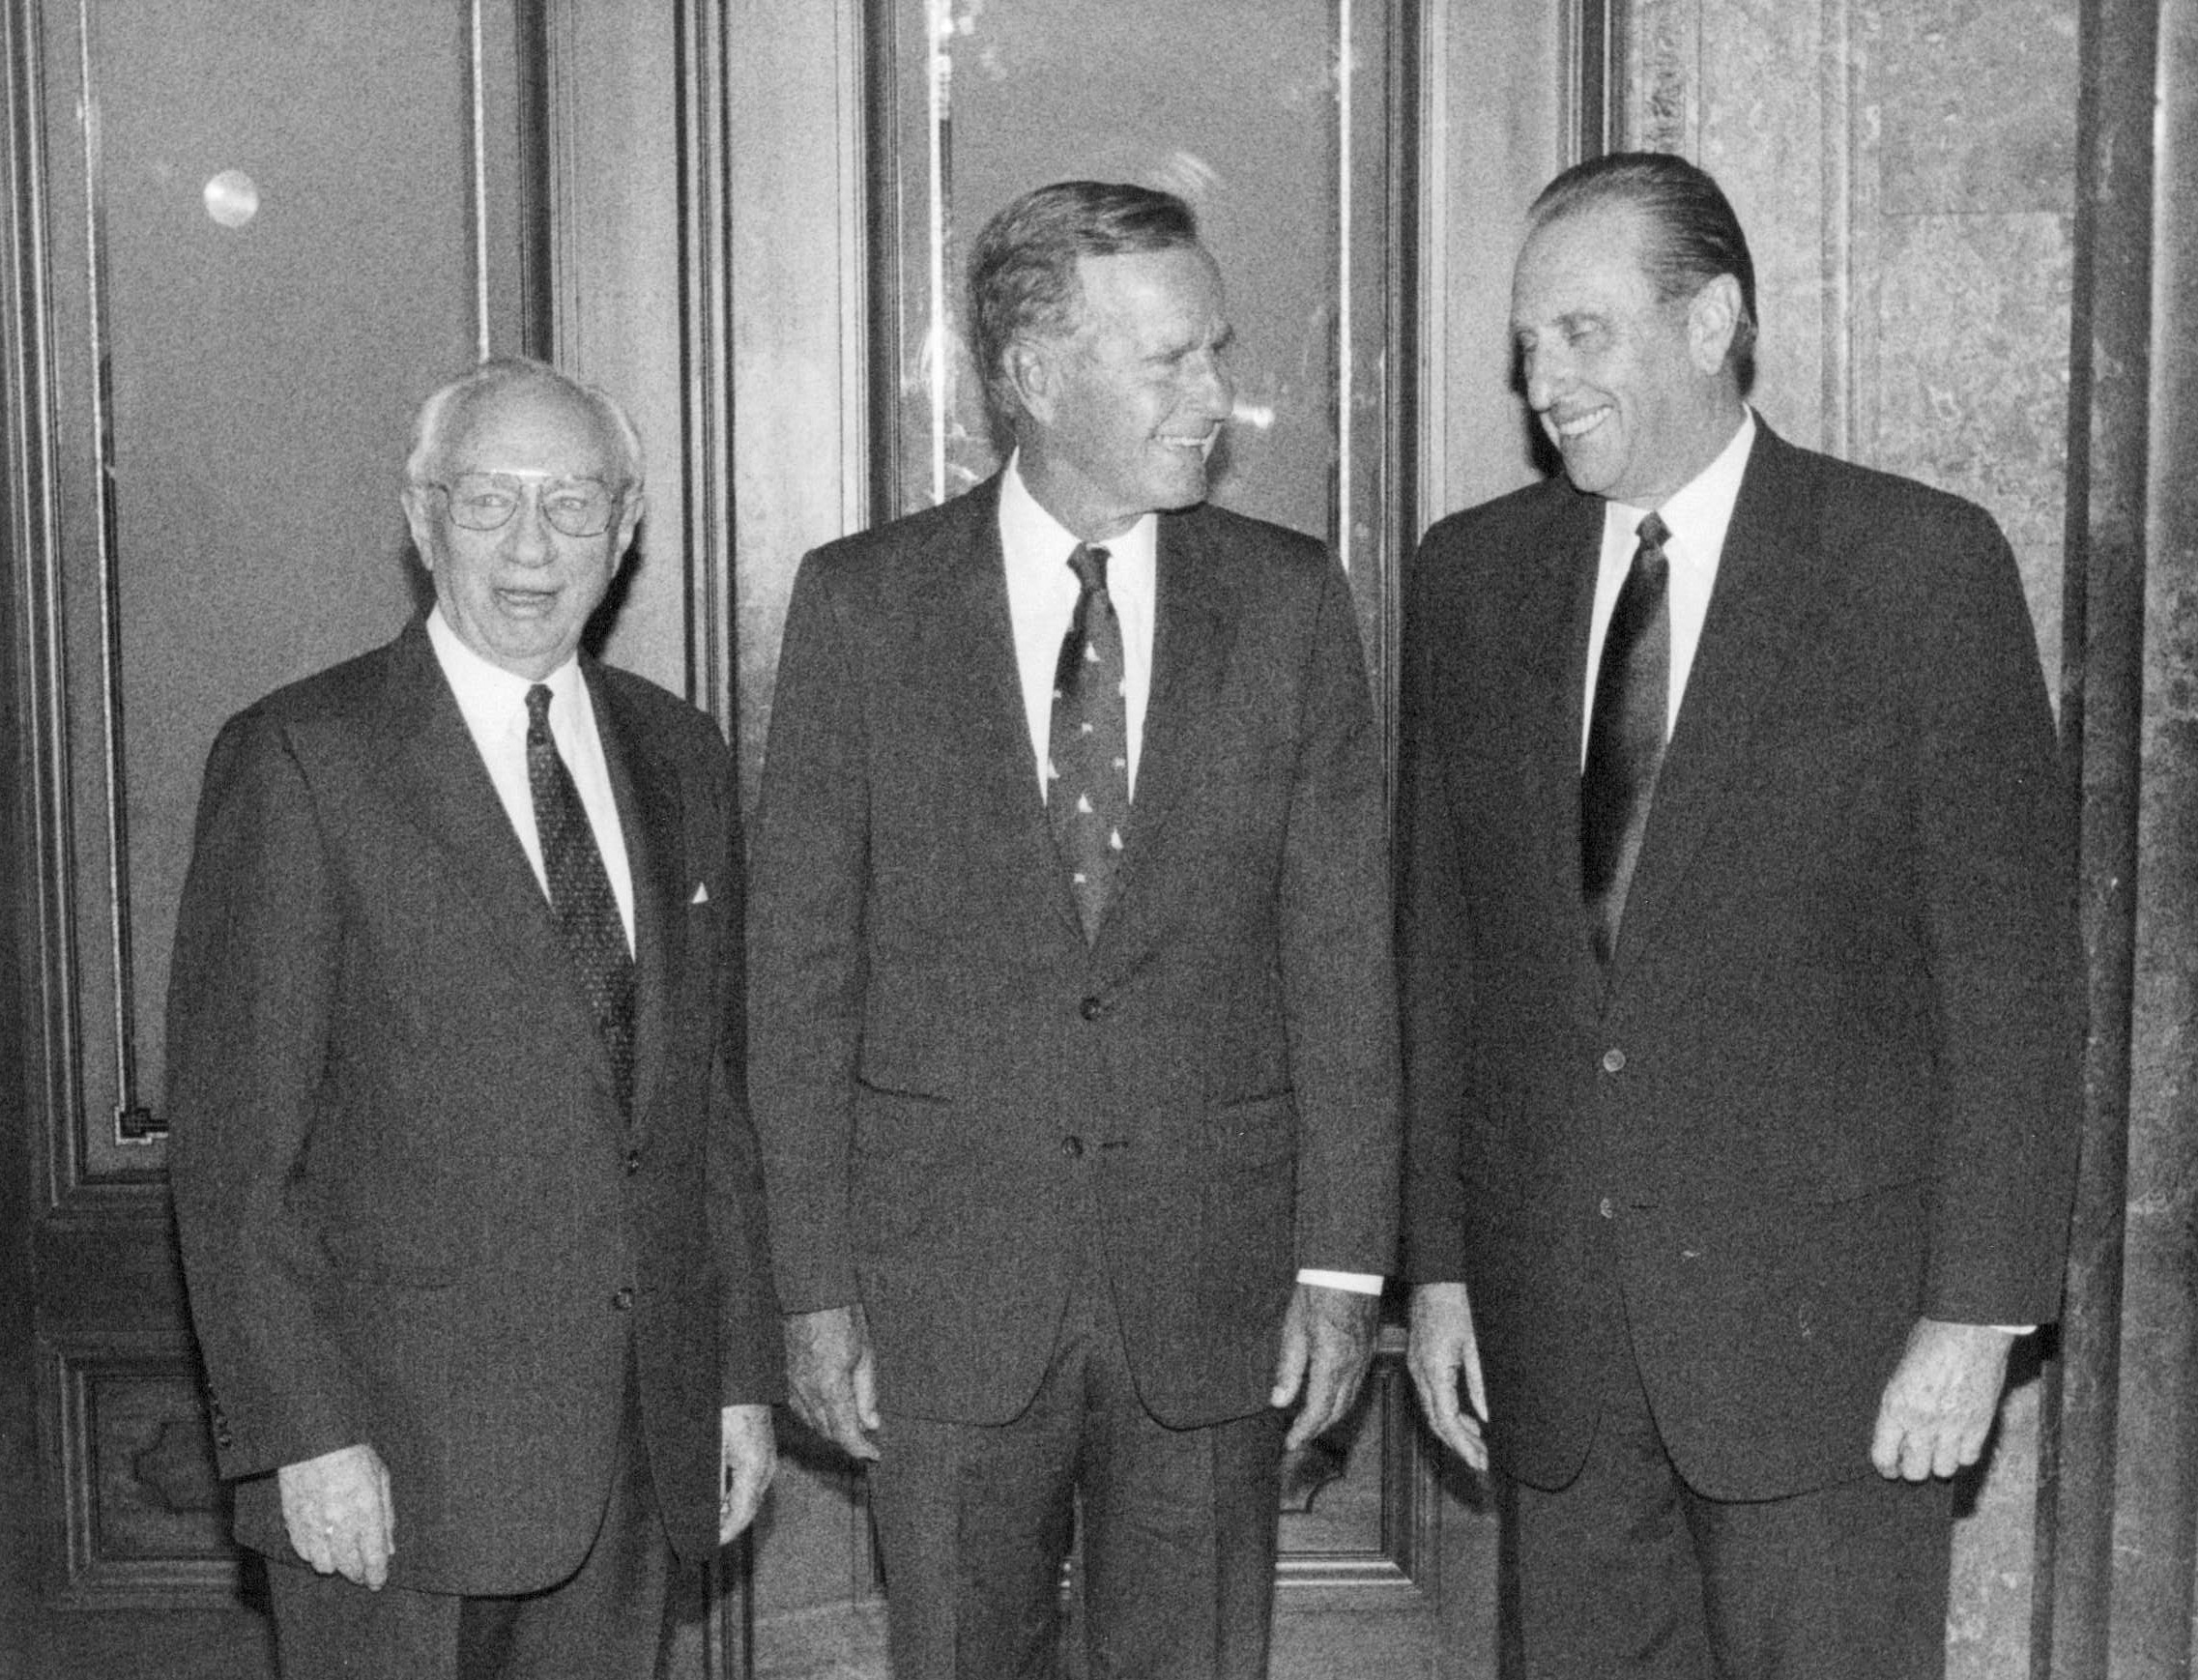 (Tribune file photo) Left to right, President Gordon B. Hinkley, President George Bush, President Thomas S. Monson meet on September 19, 1991.